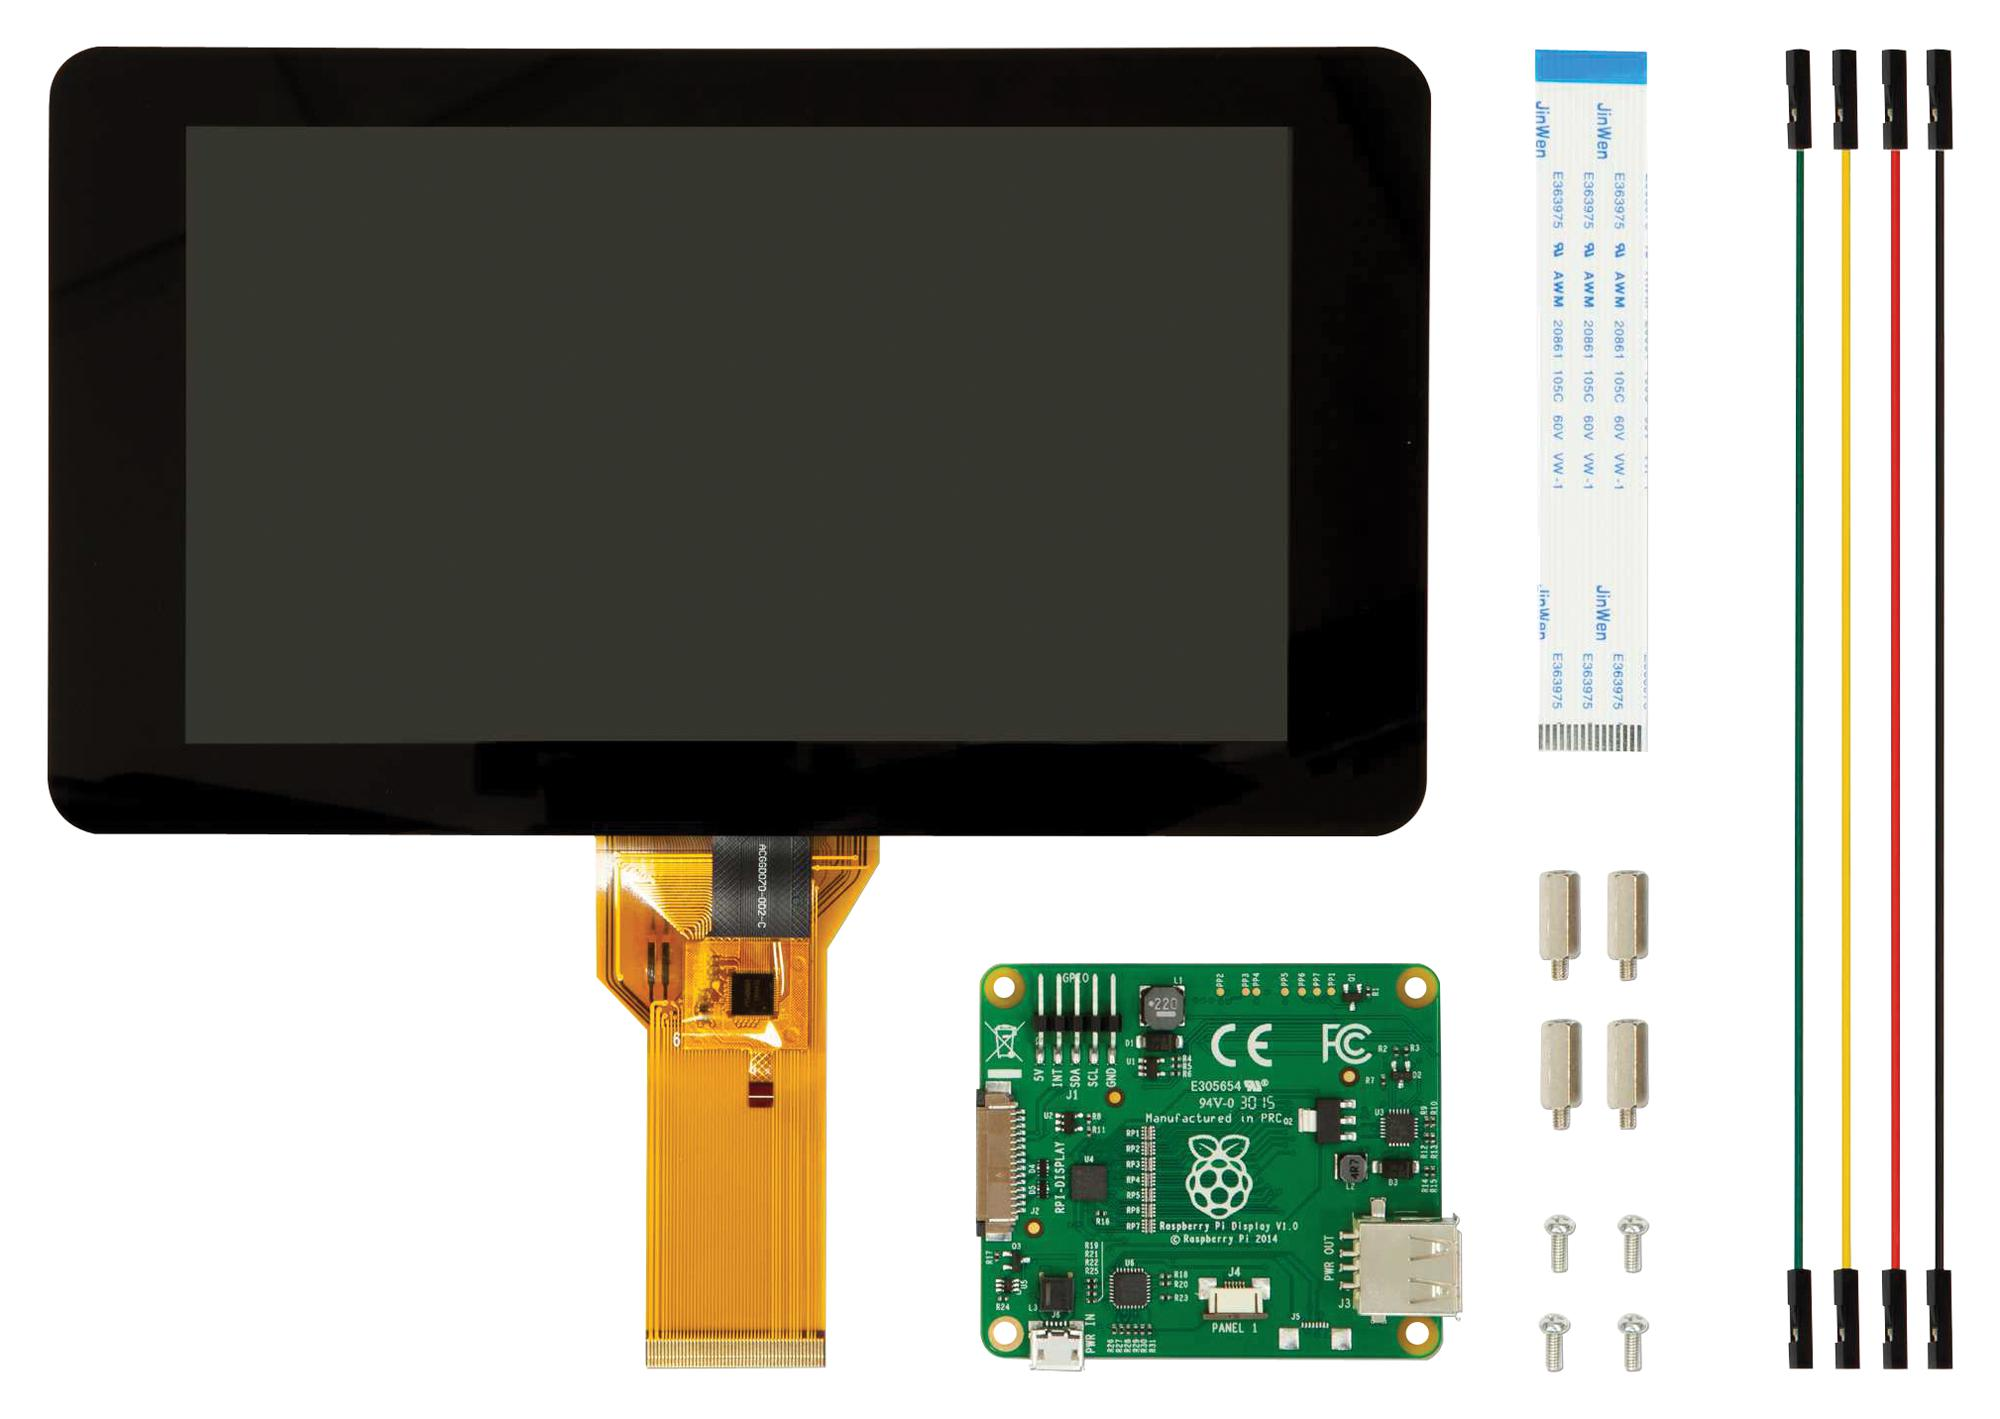 Ultrasonic Distance Measurement Using Python Part 1 Raspberry Pi Spy Wiringpi Sensor Official Touchscreen Display Is Here